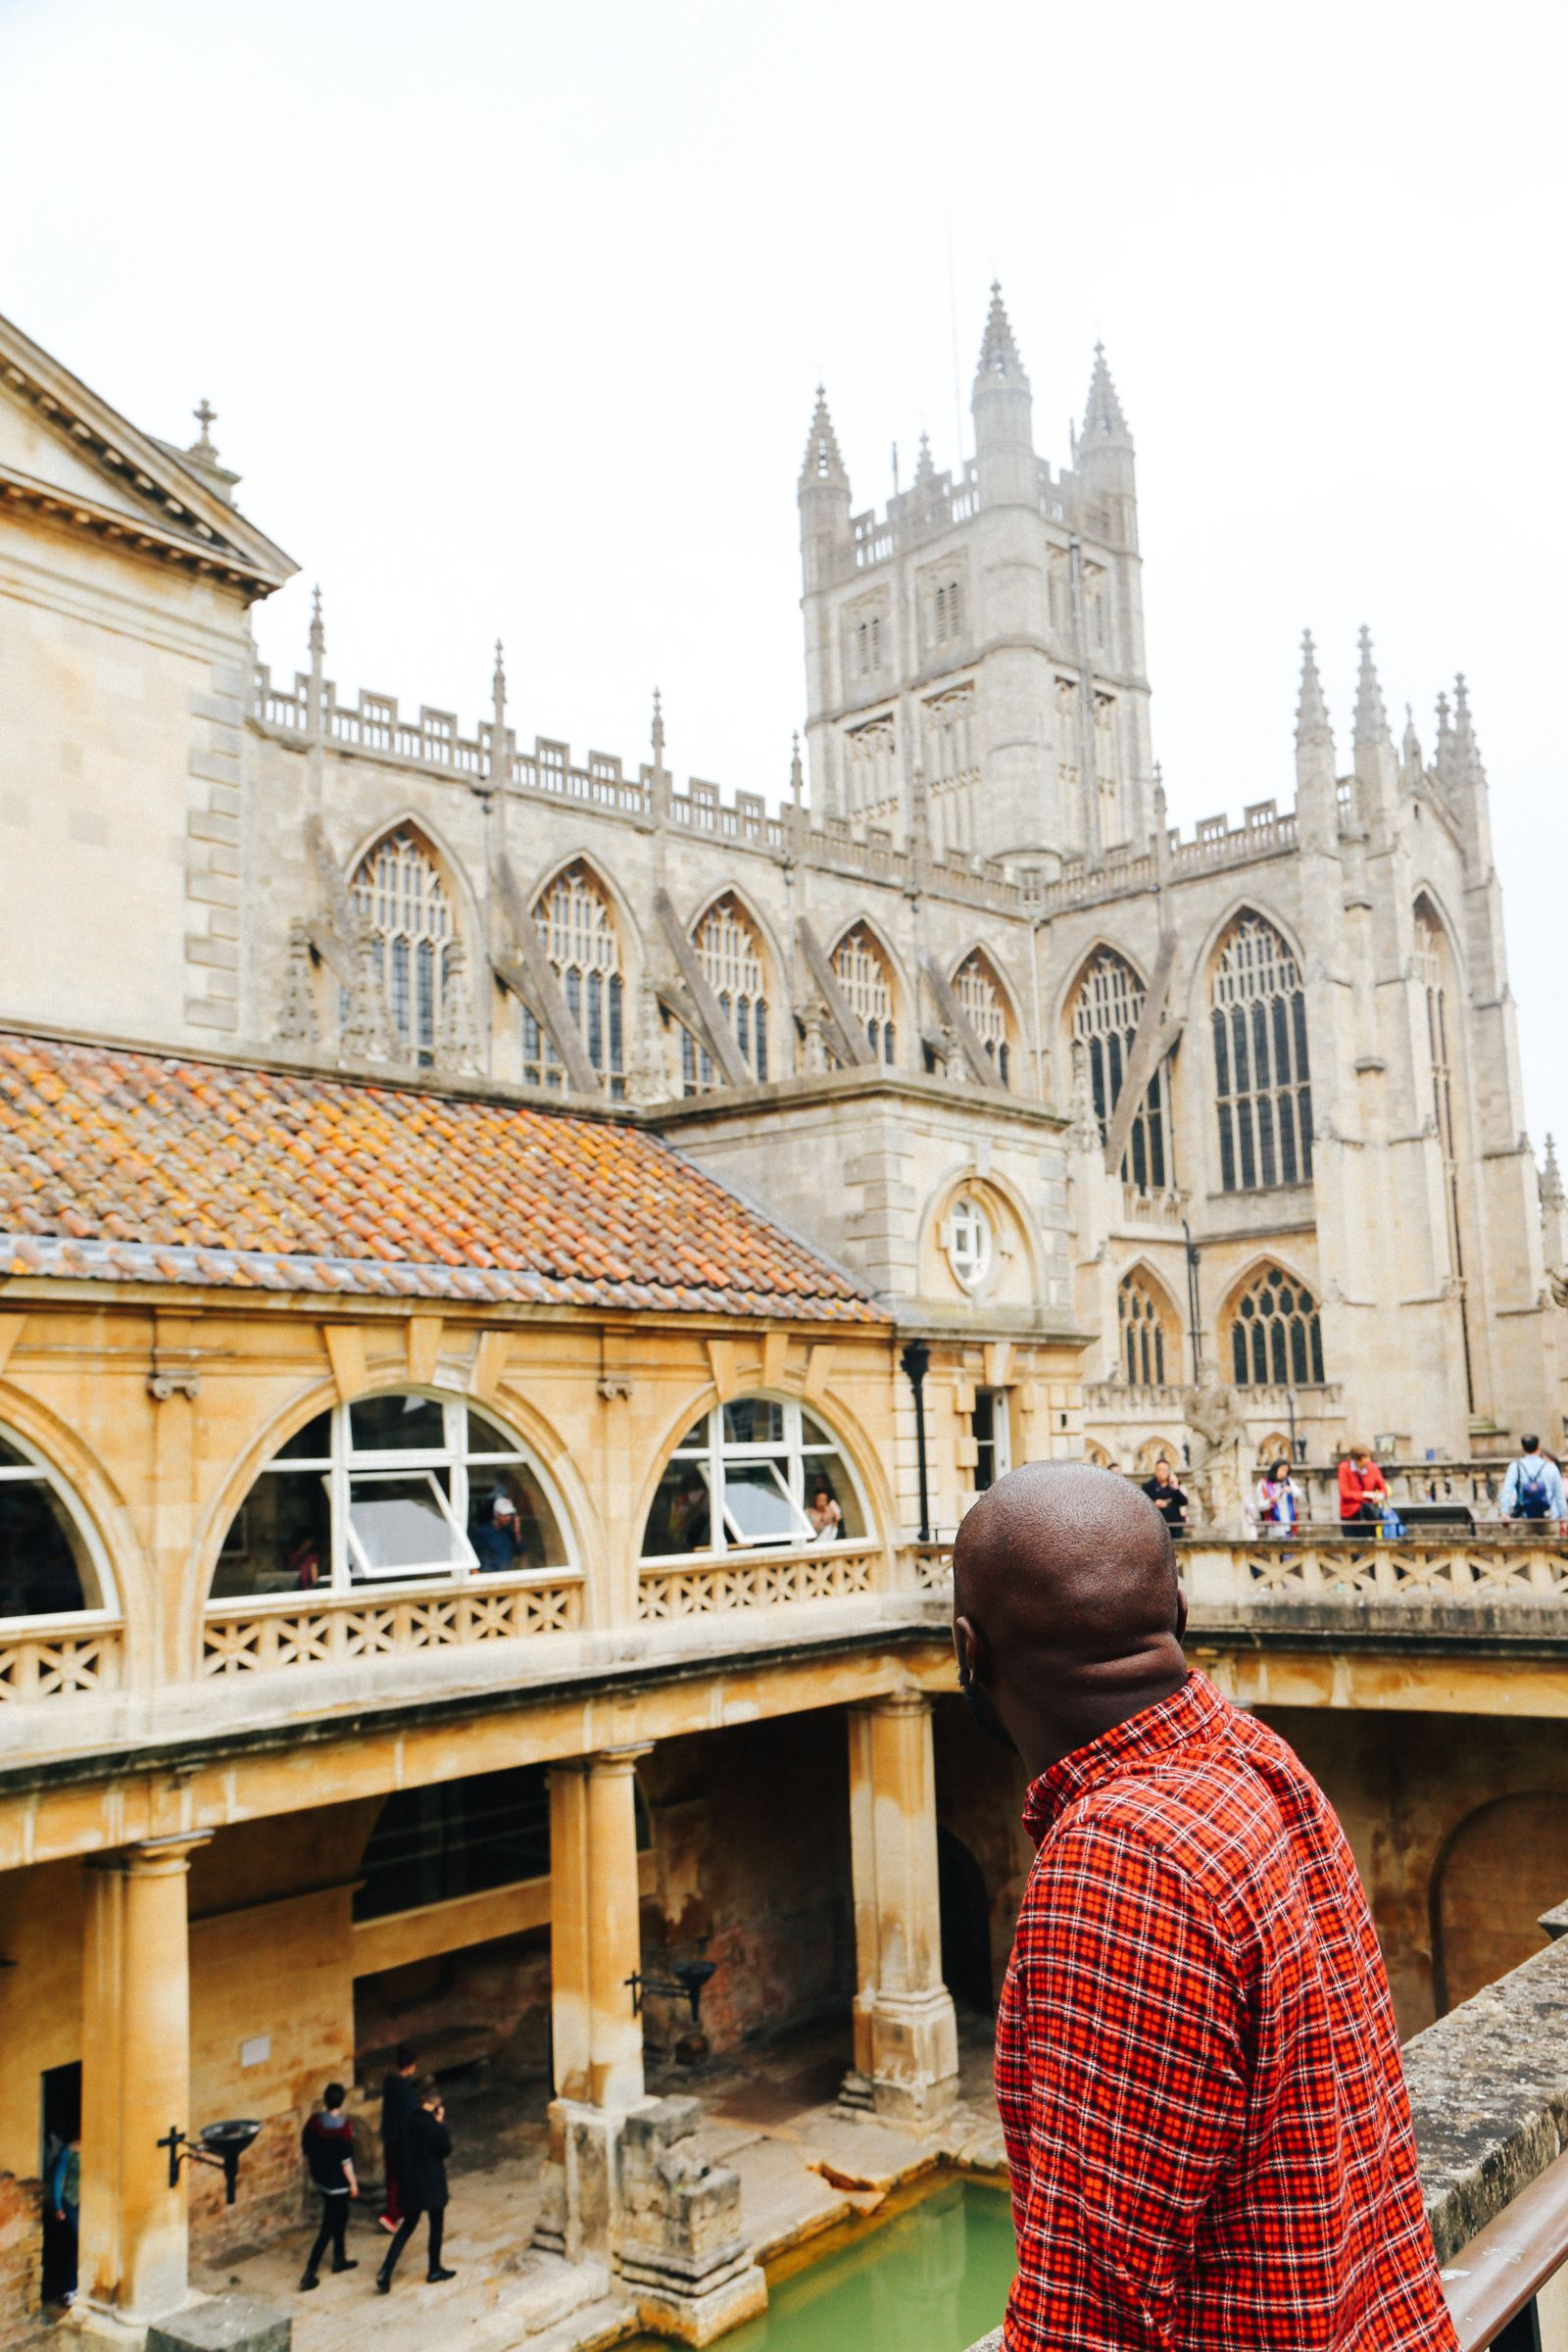 24 hours in Bath – where to eat, shop and sleep for a stylish speed-break 24 hours in Bath – where to eat, shop and sleep for a stylish speed-break new images